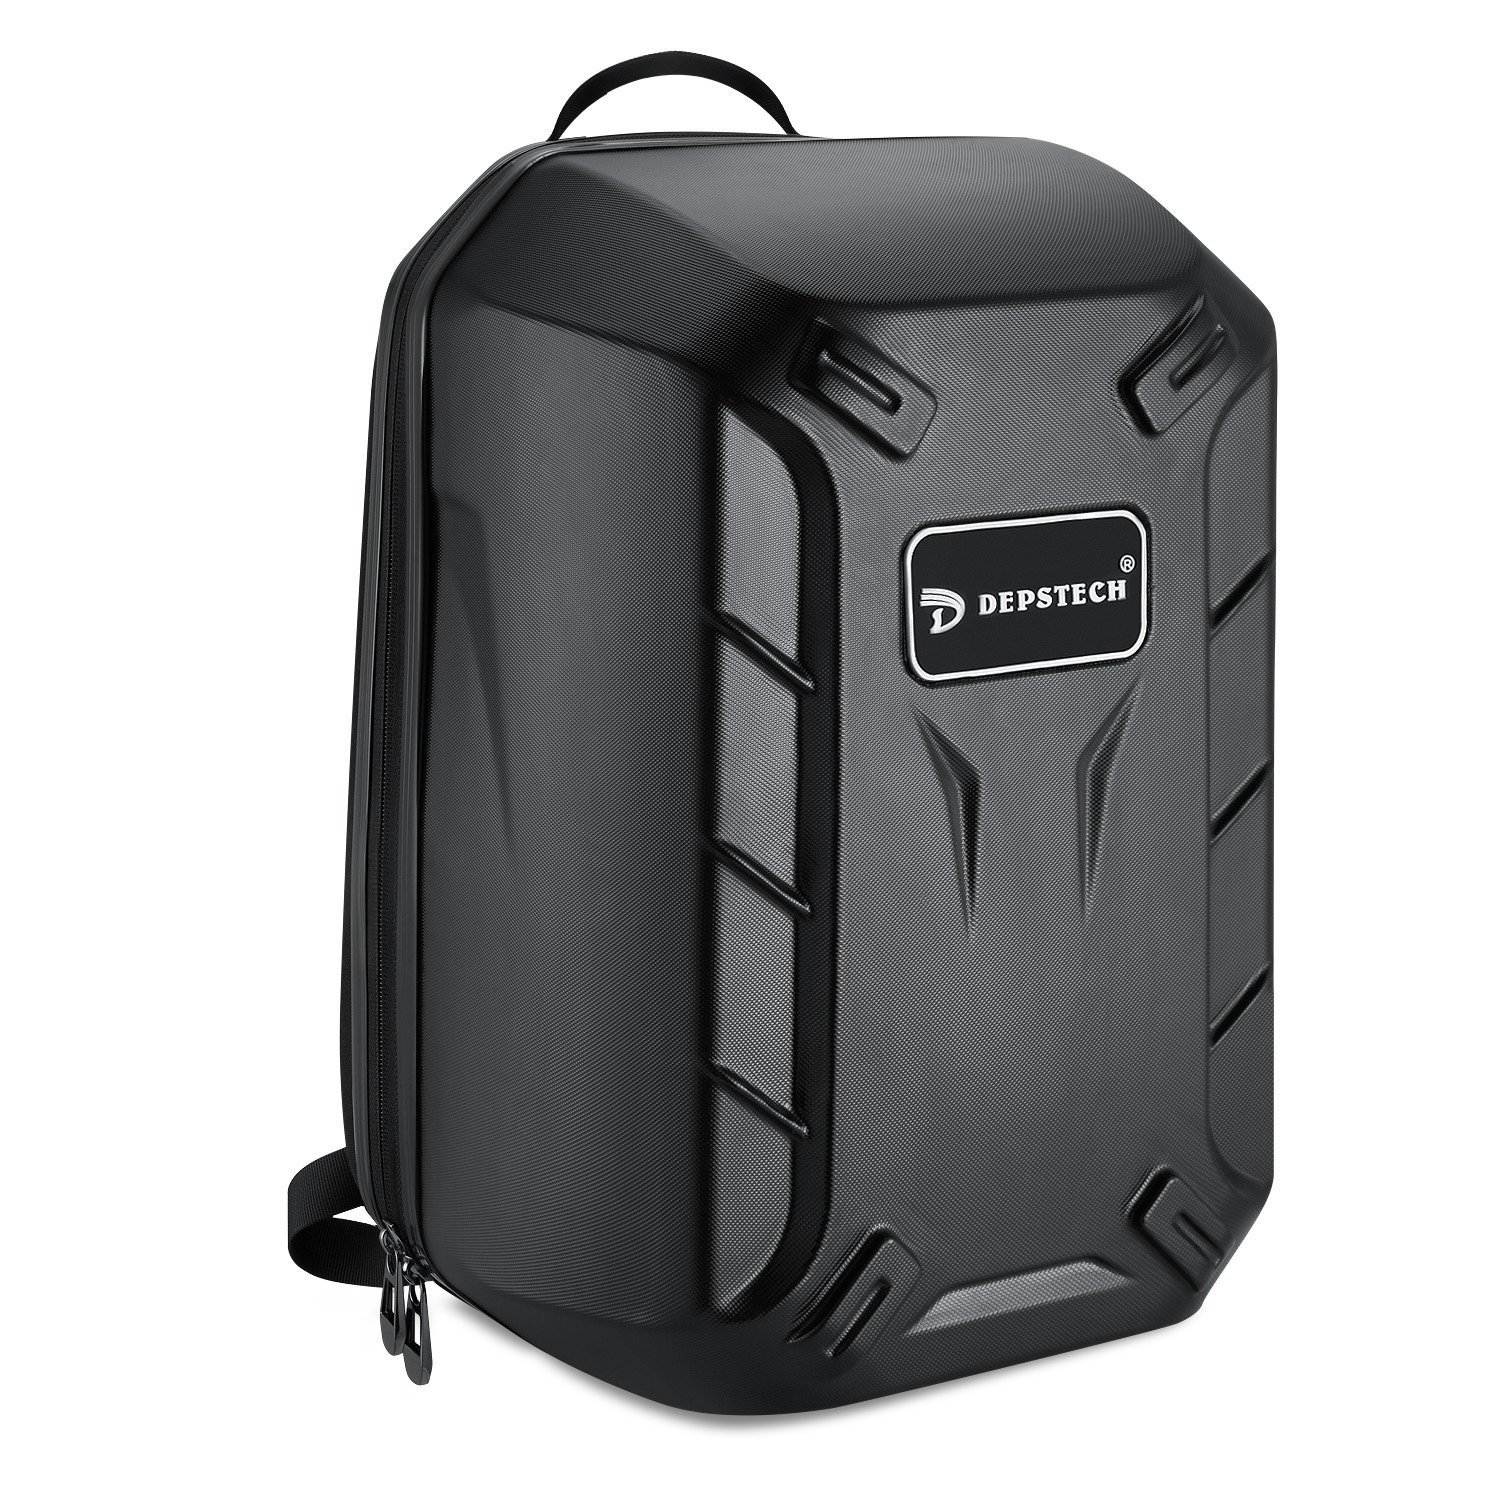 Depstech Protective Travel Hardshell Backpack Case for DJI Phantom 3, Professional, Advanced, 4K and Standard Quadcopter, Sturdy High-Grade PC Outer Shell, Comfortable and Portable - Black DJI-04